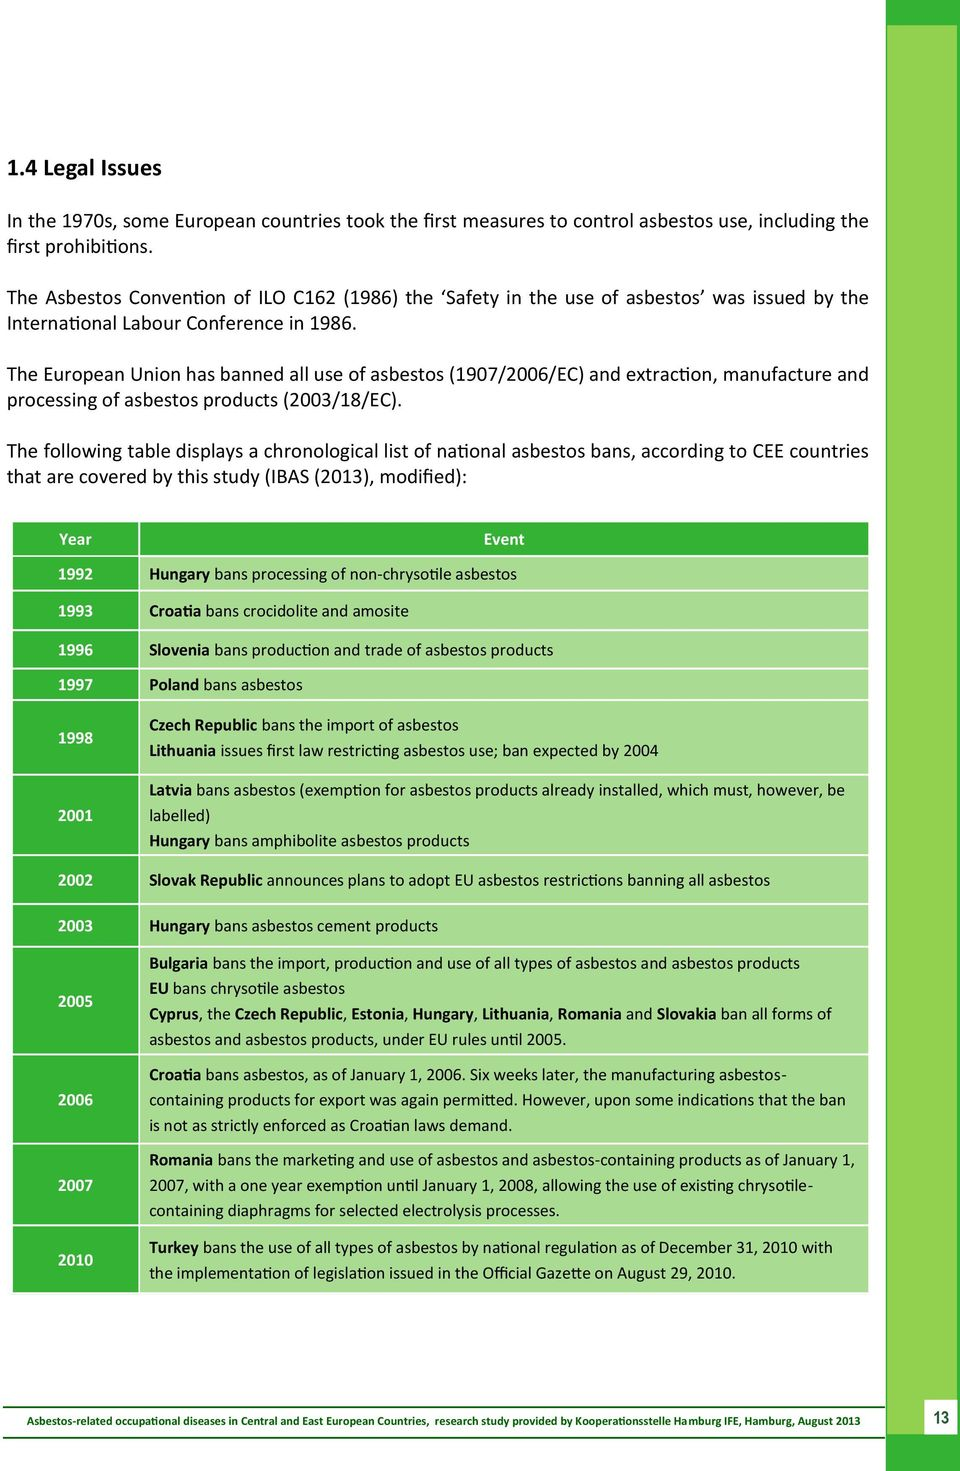 The European Union has banned all use of asbestos (1907/2006/EC) and extraction, manufacture and processing of asbestos products (2003/18/EC).